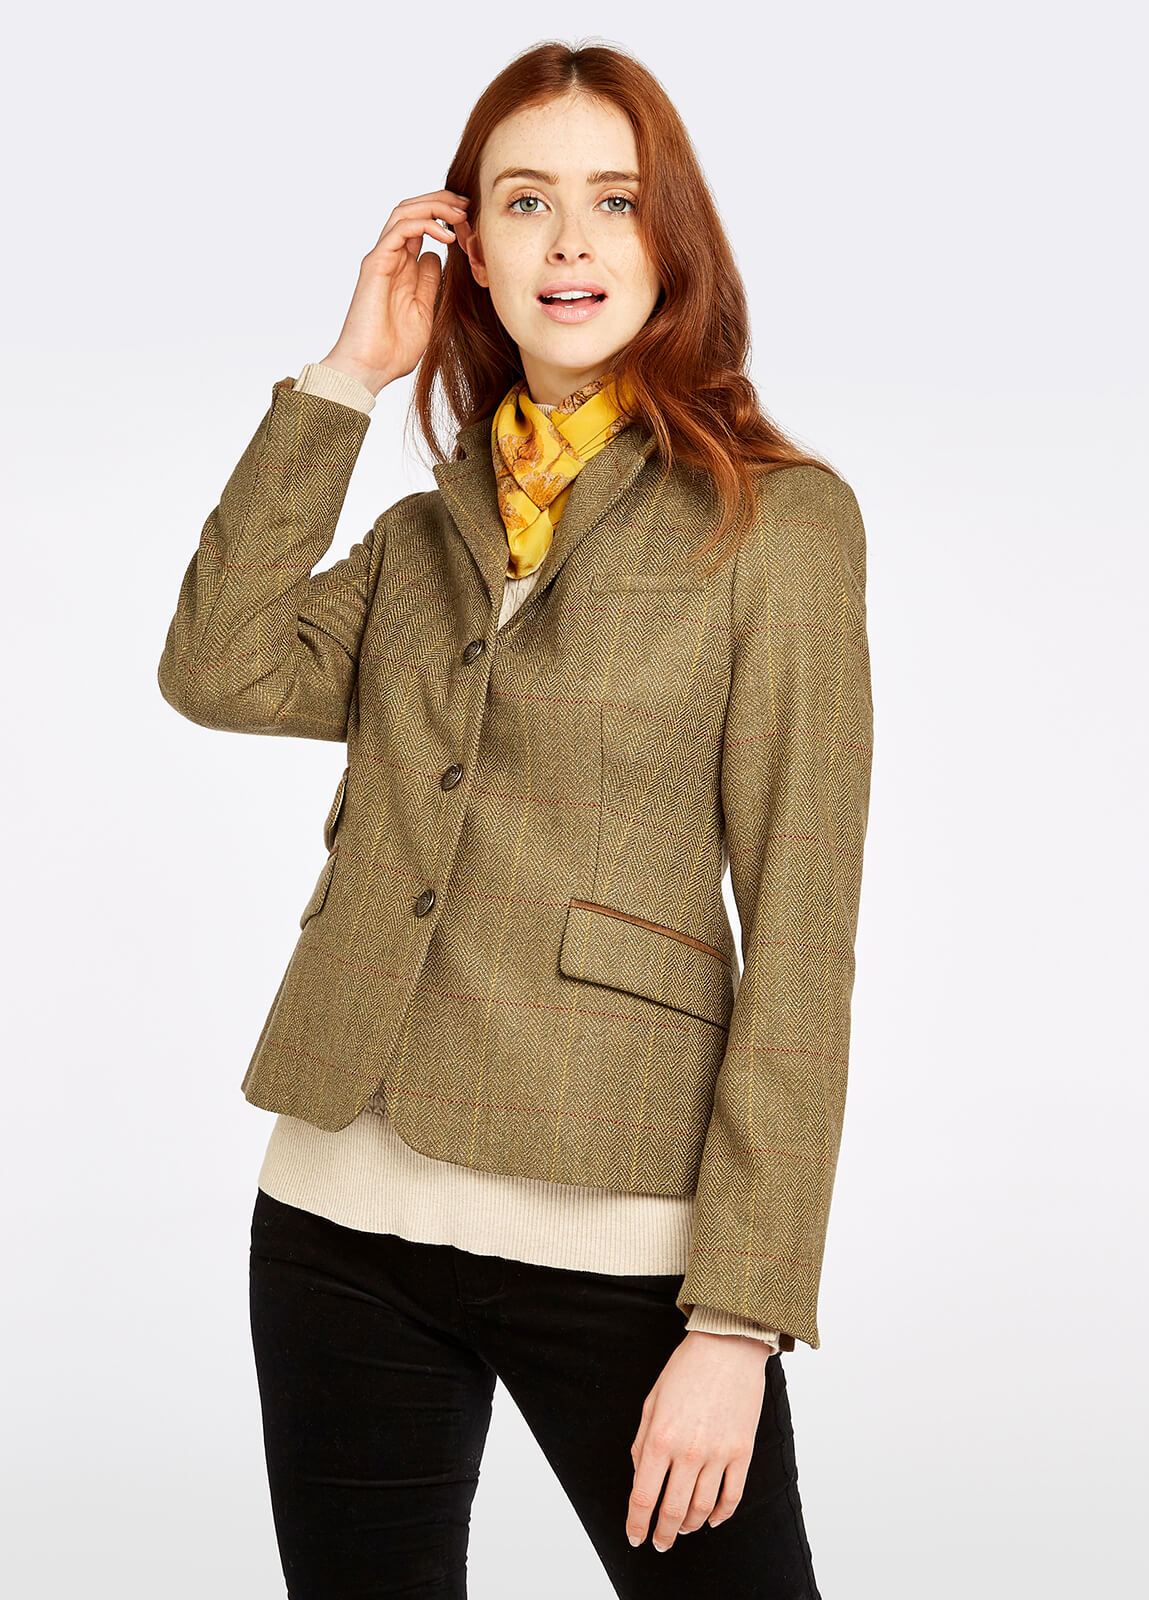 Buttercup Tweed Jacket - Elm